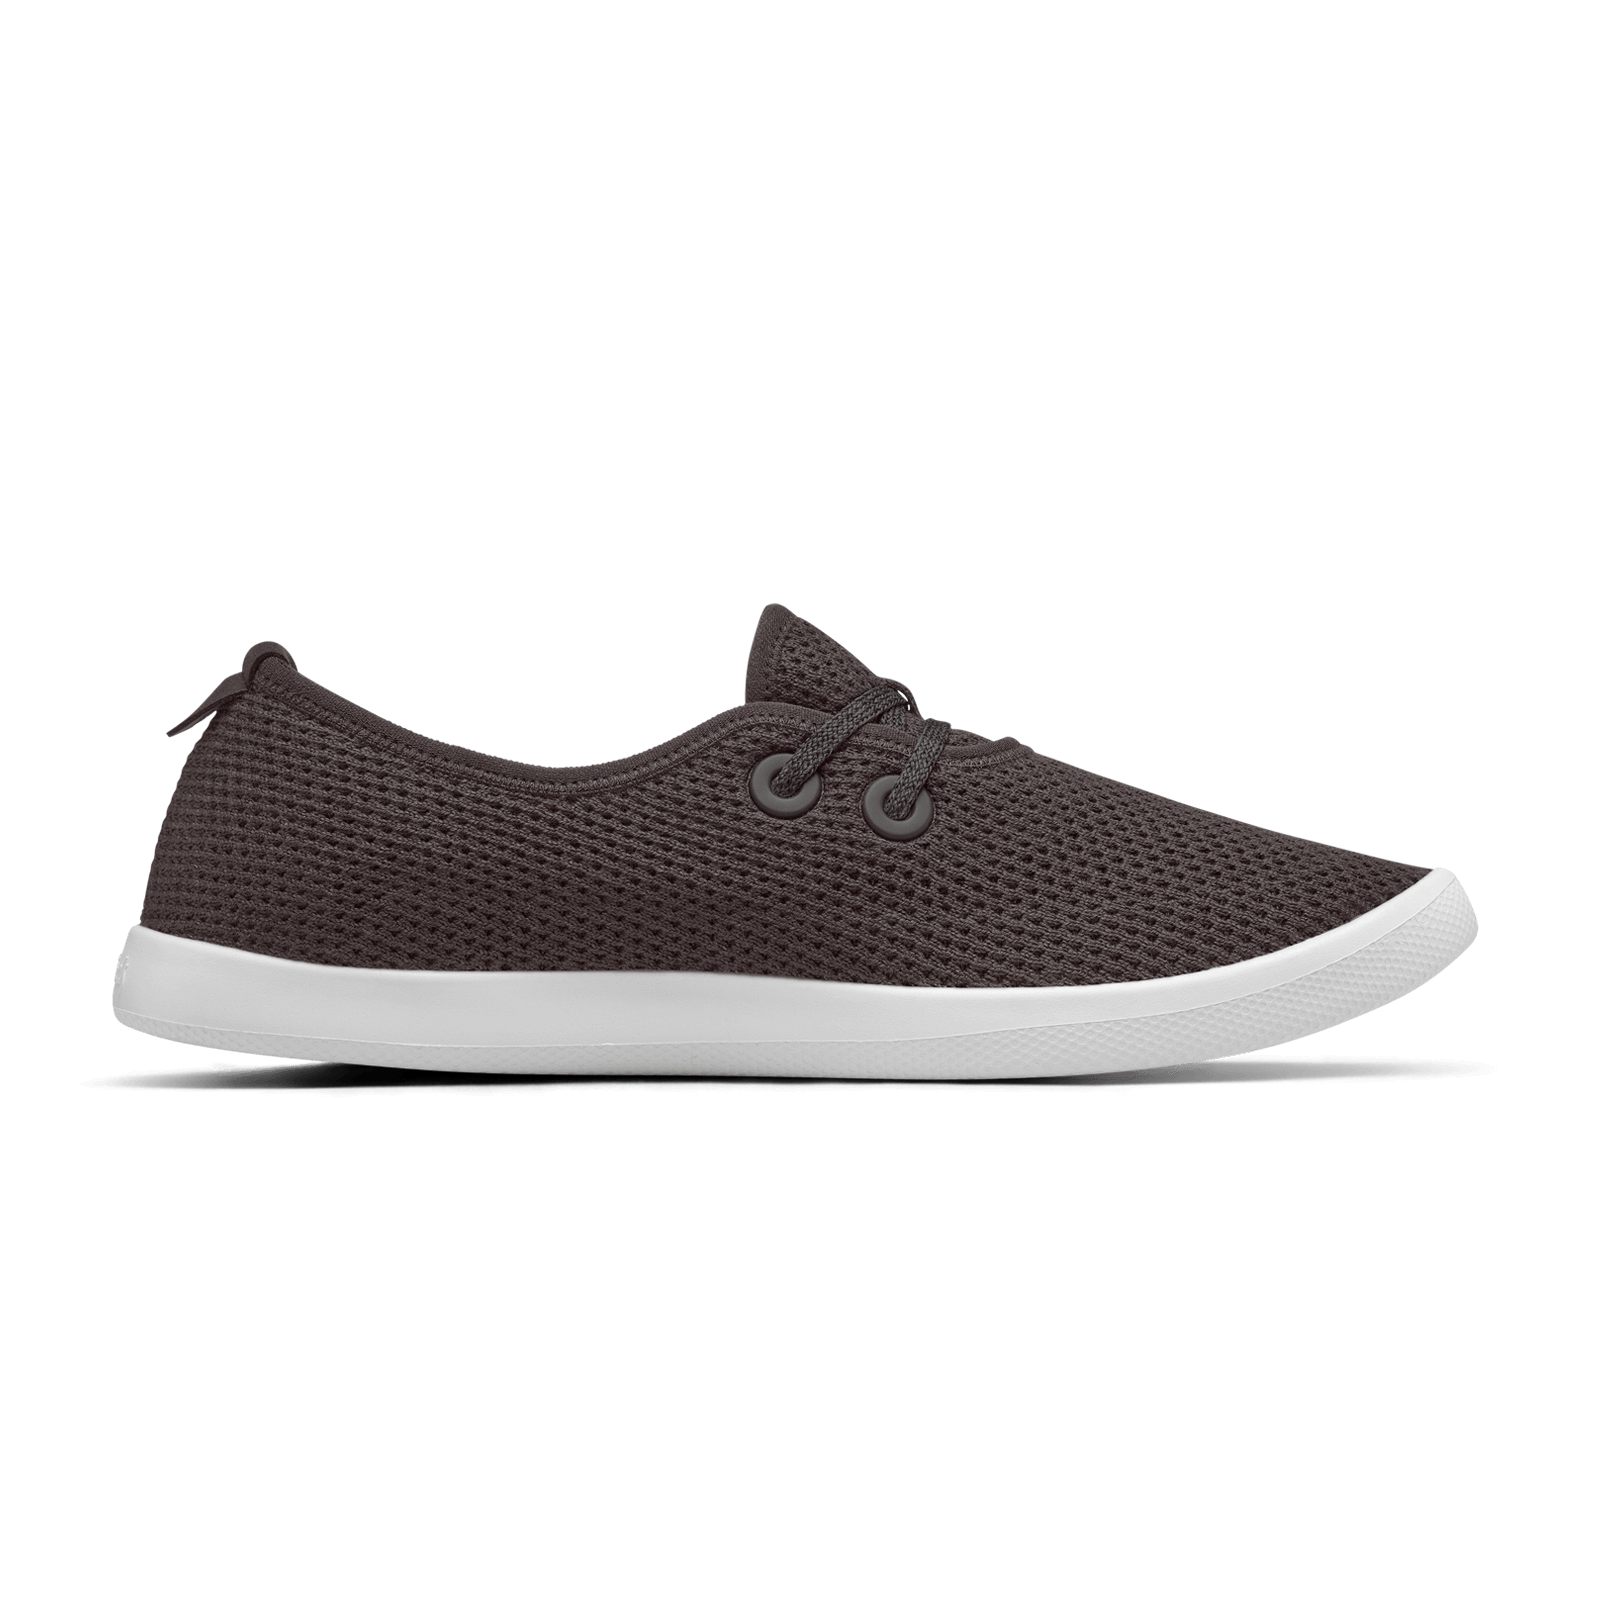 Most comfortable shoes, Classic style